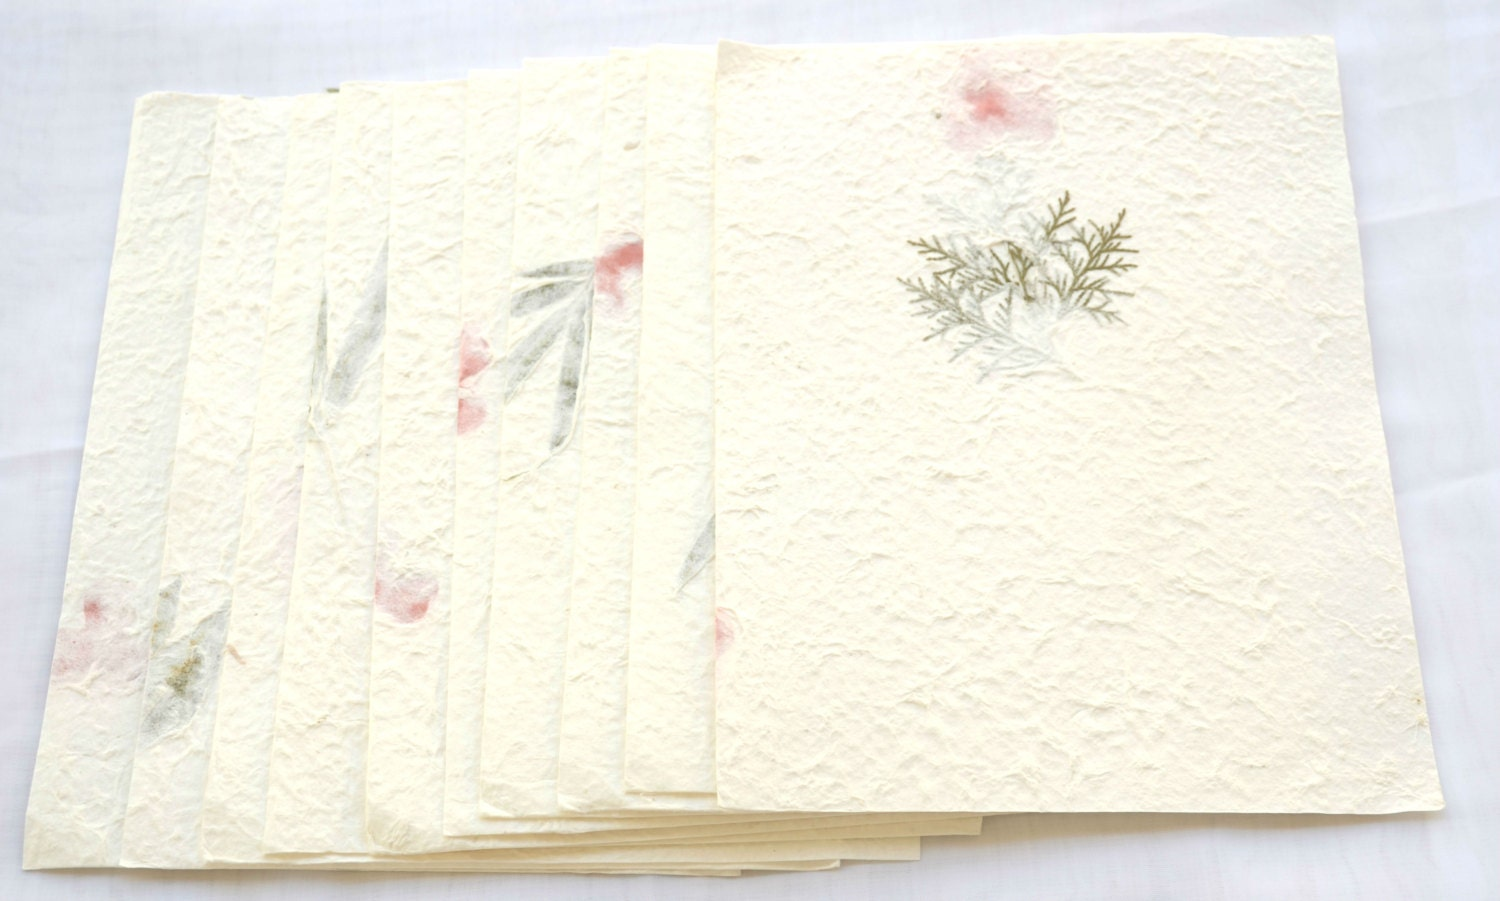 10x Dried Pressed Leave Or Flower Handmade Mulbery Paper Etsy